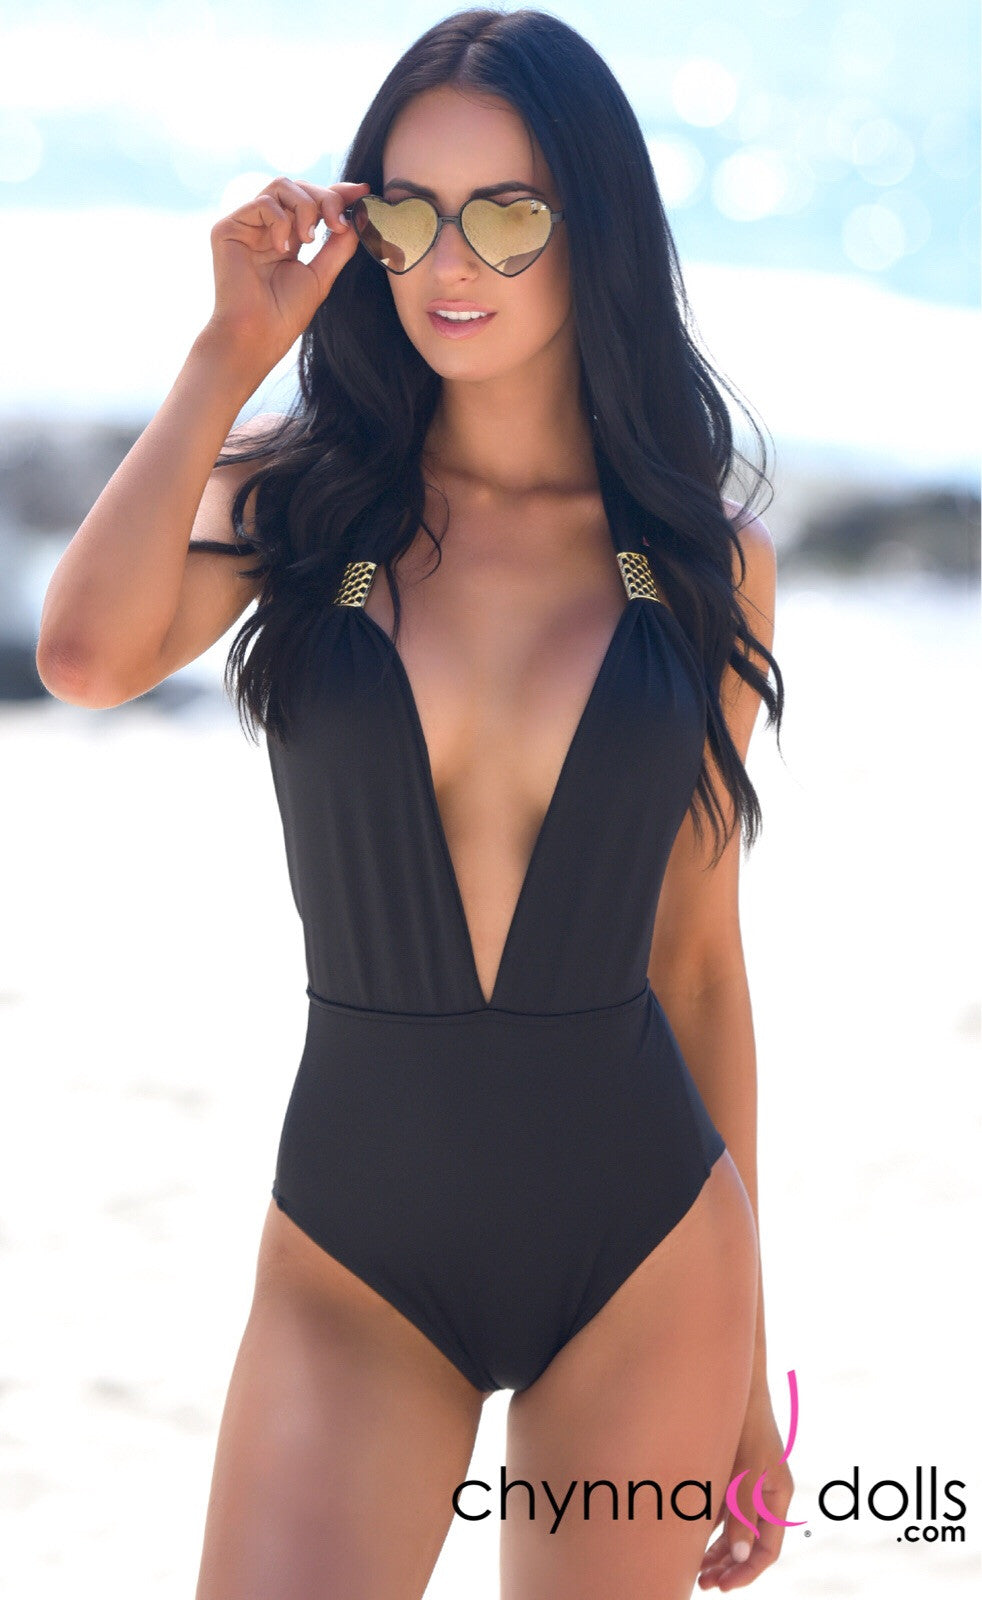 Selma: Deep plunge one piece w/ gold brooch in Black - Chynna Dolls Swimwear